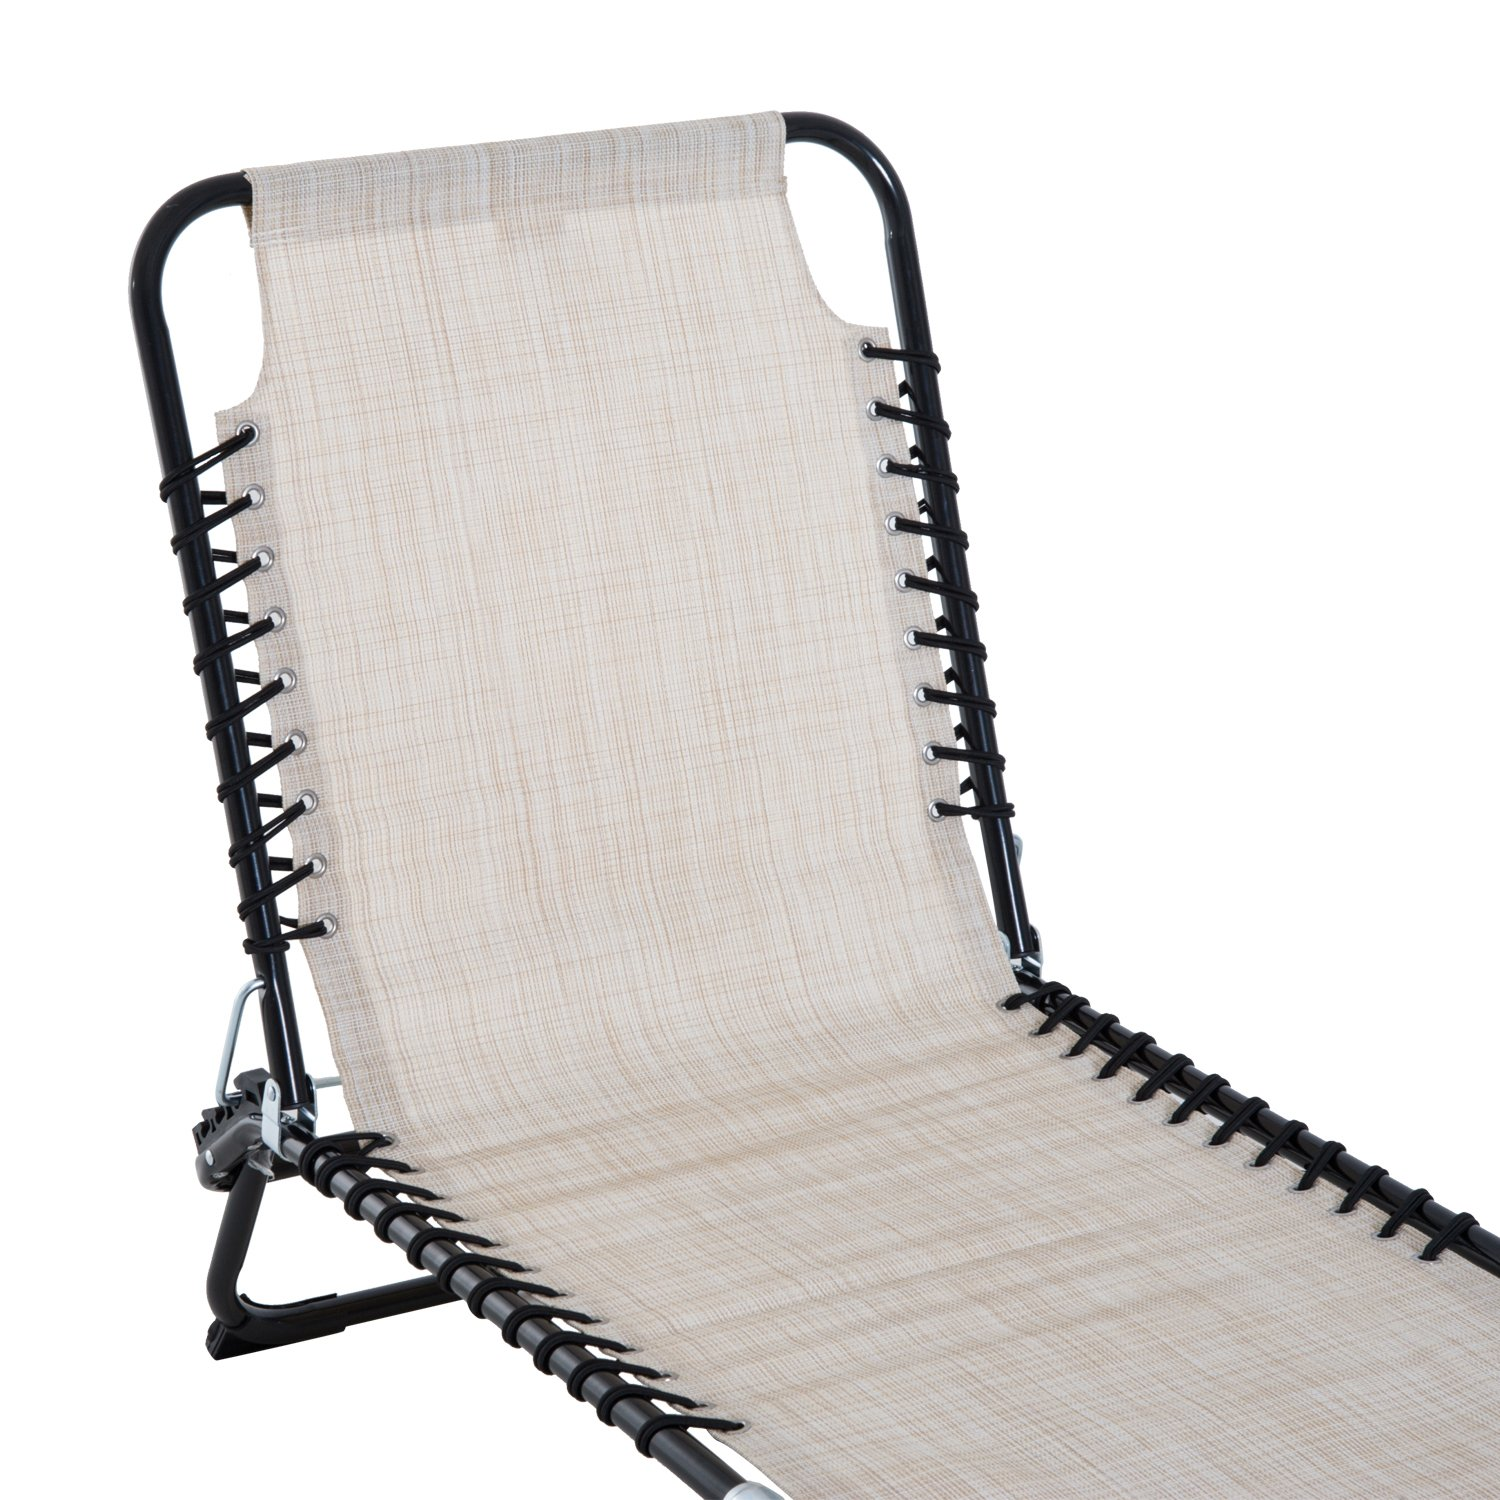 Outsunny 3-Position Reclining Beach Chair Chaise Lounge Folding Chair - Cream White by Outsunny (Image #9)